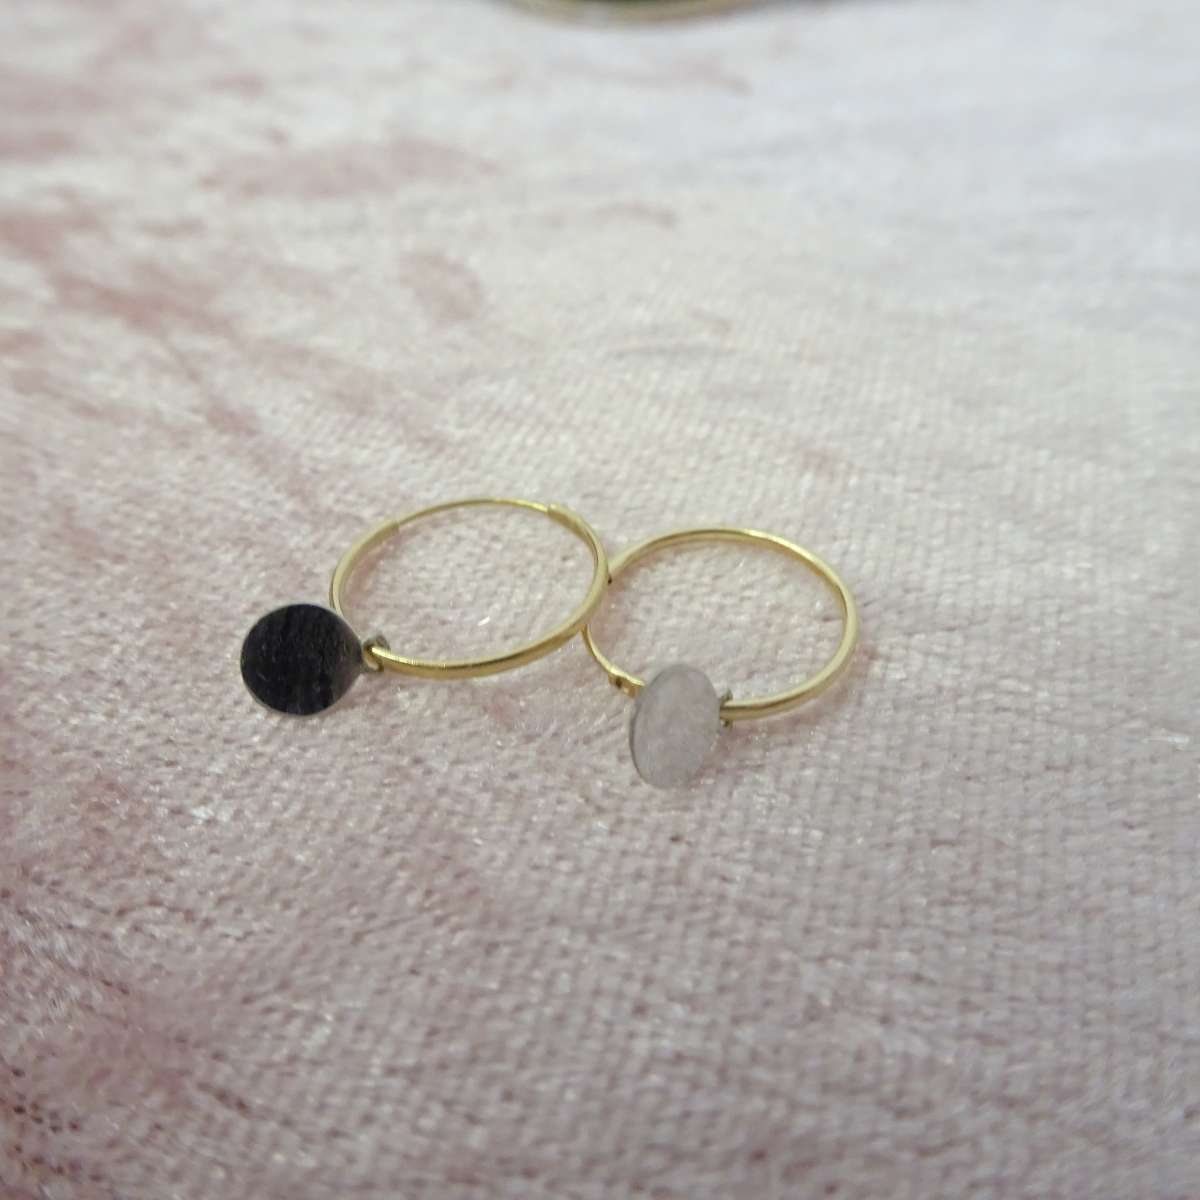 Alterative image for 9ct Gold 10mm Charm Hoop Earrings with Tiny 9ct White Gold Circle Tags